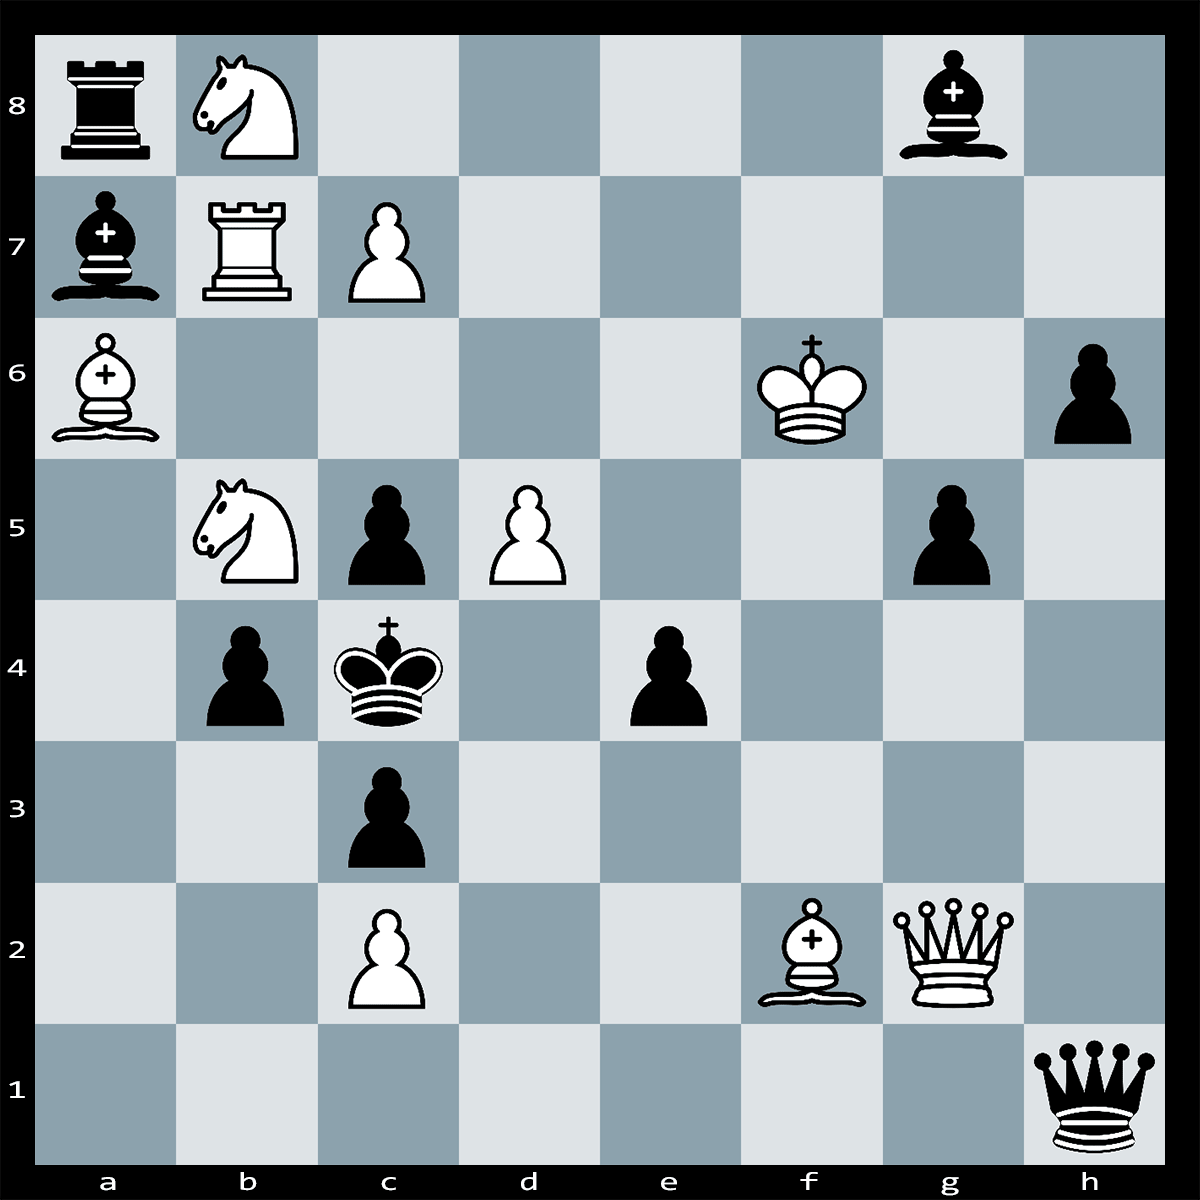 Mate in Two Moves, White to Play - Chess Puzzle #52